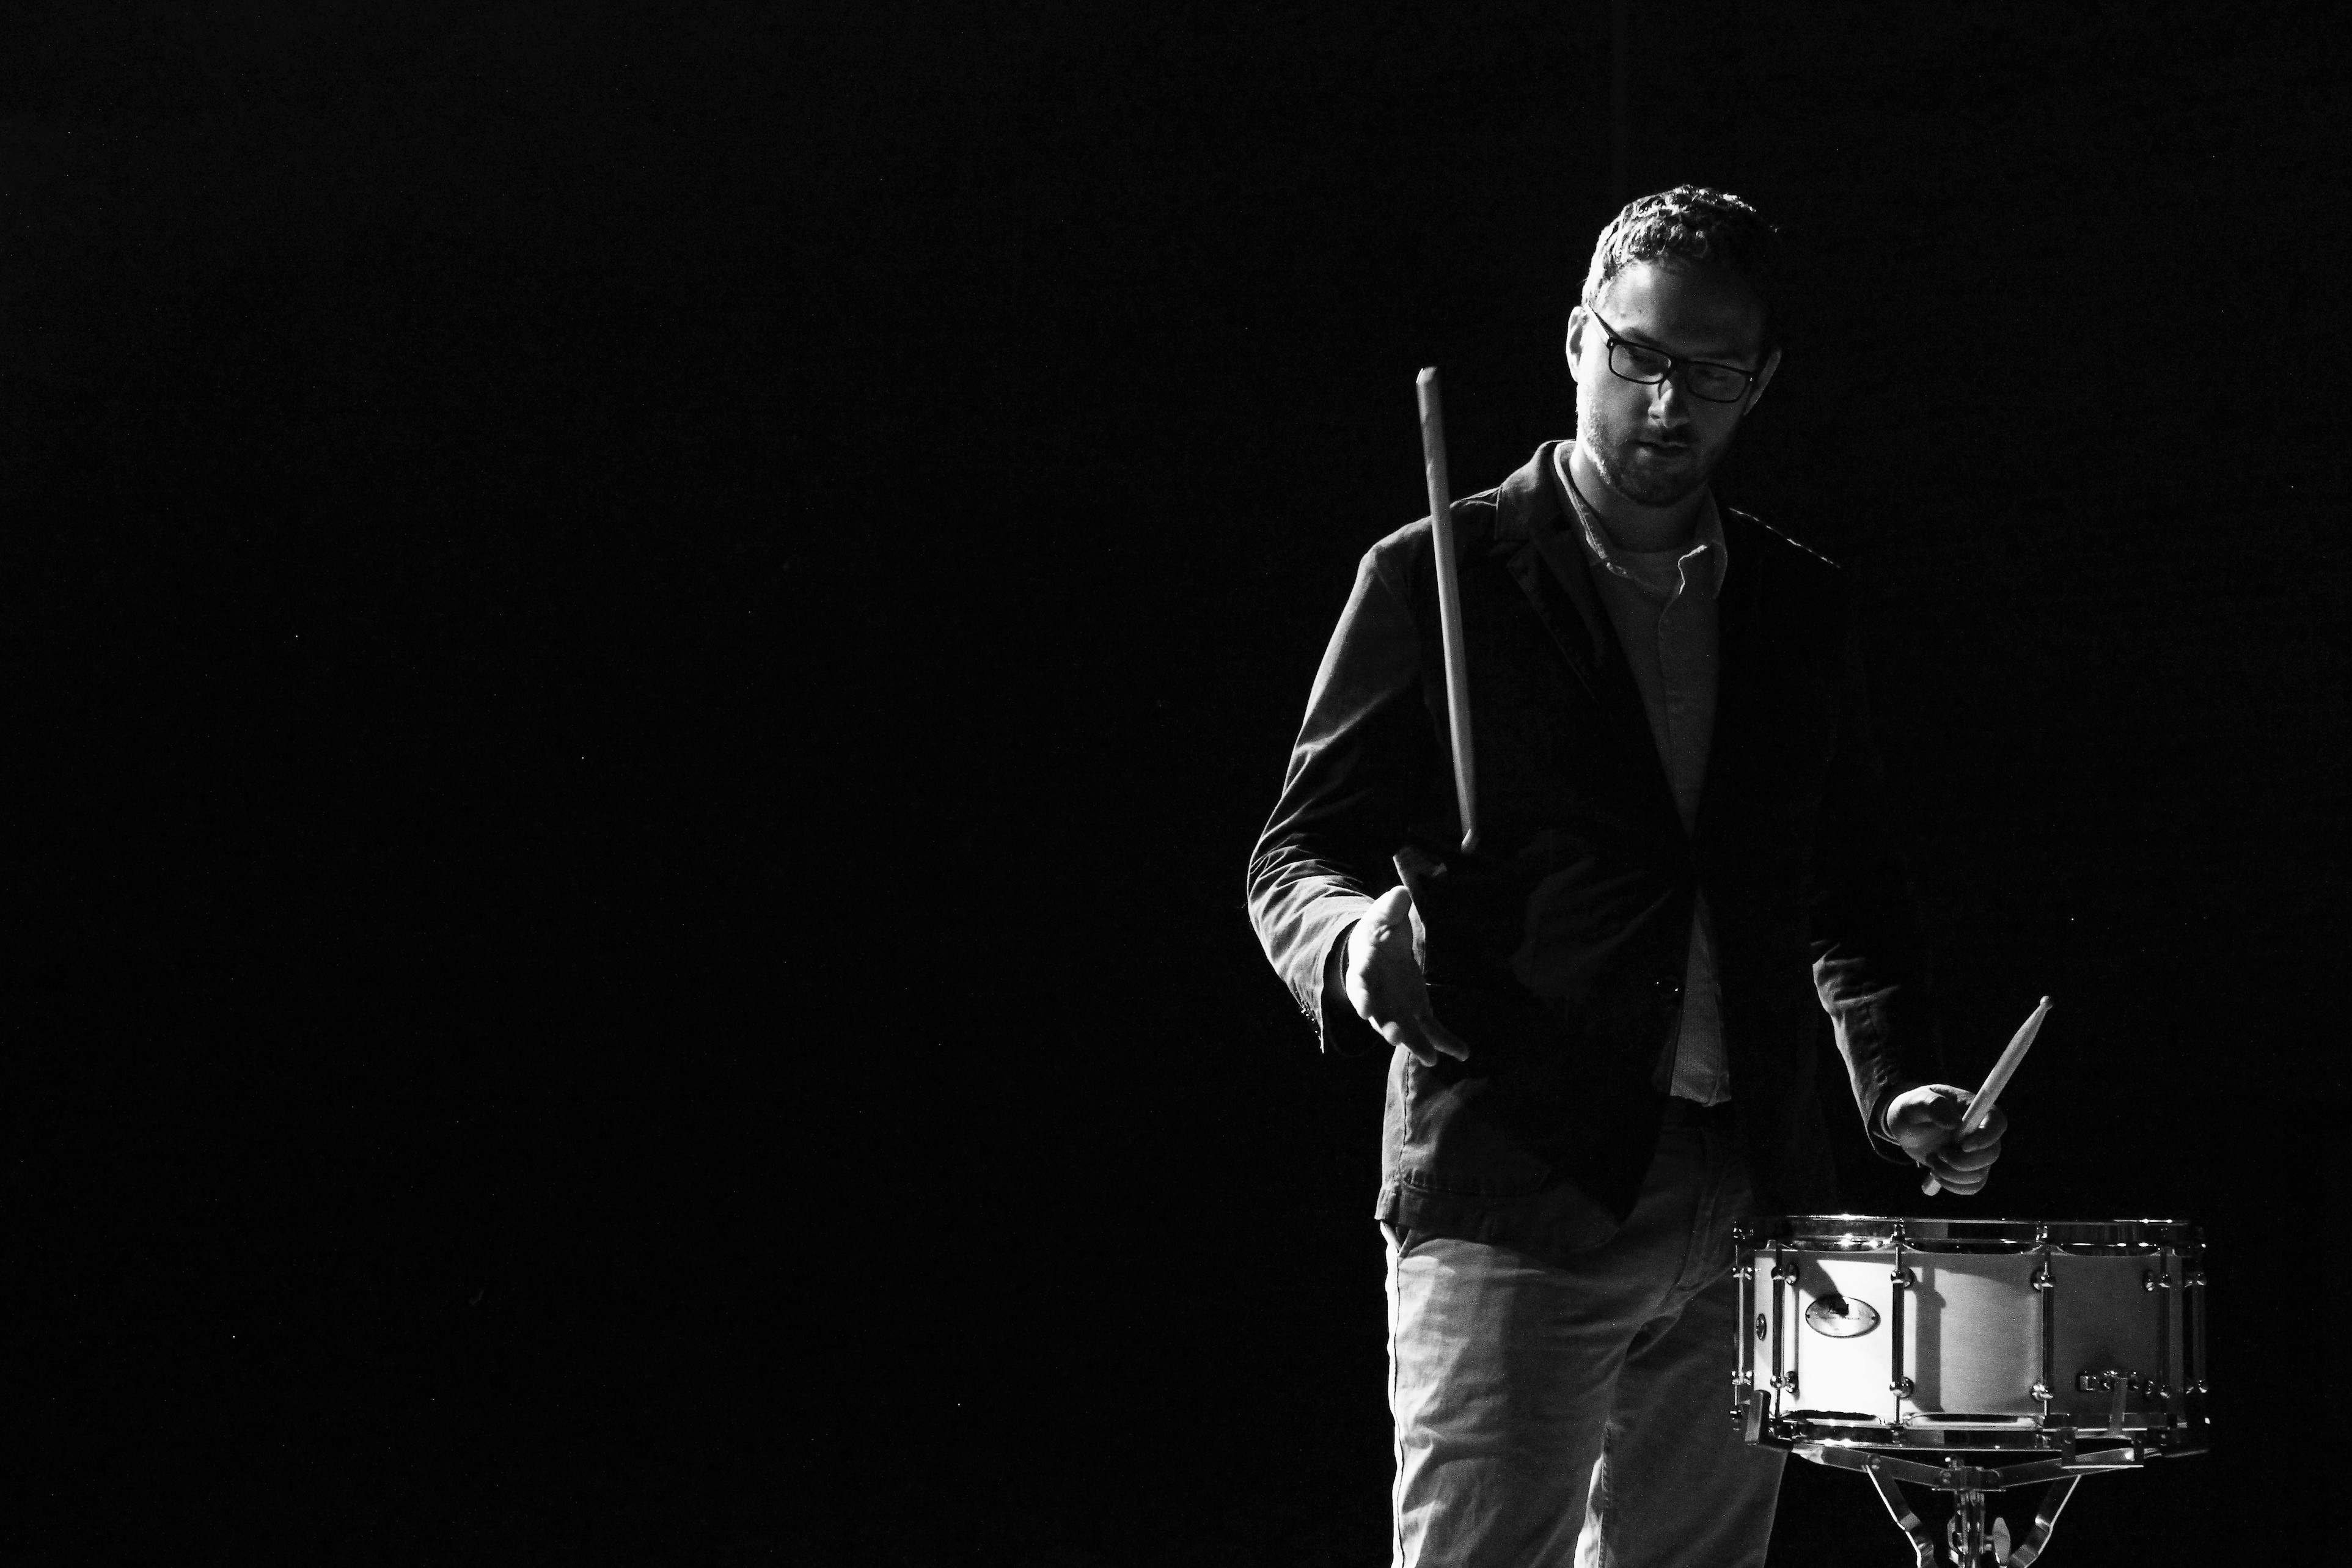 Portrait style photo of a drummer